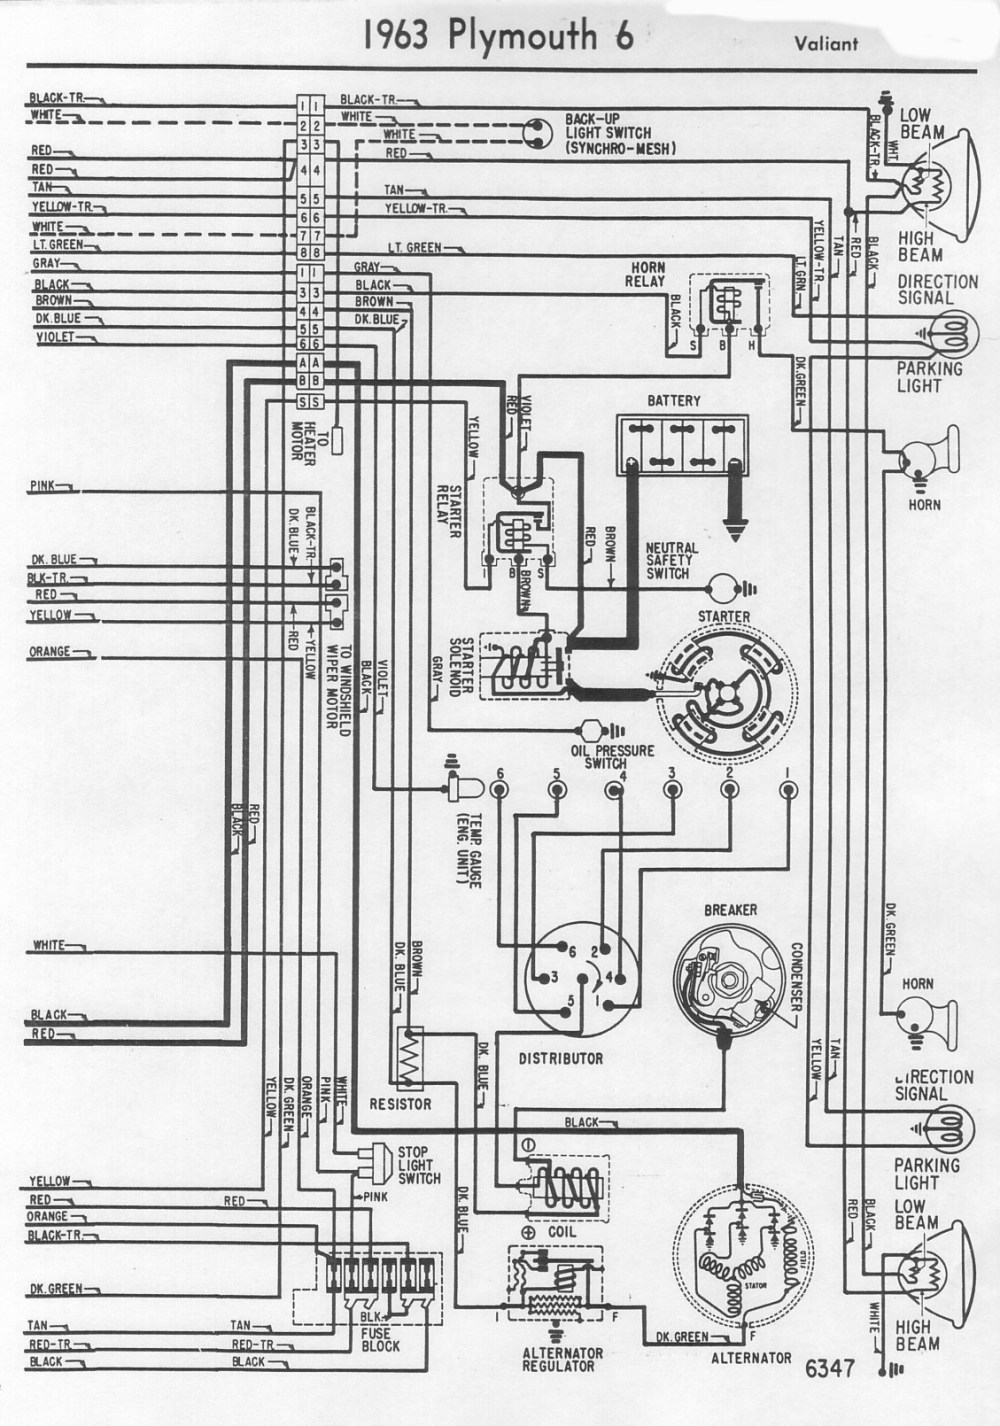 medium resolution of switch wiring for 1968 plymouth reinvent your wiring diagram u2022 rh kismetcars co uk 1970 plymouth